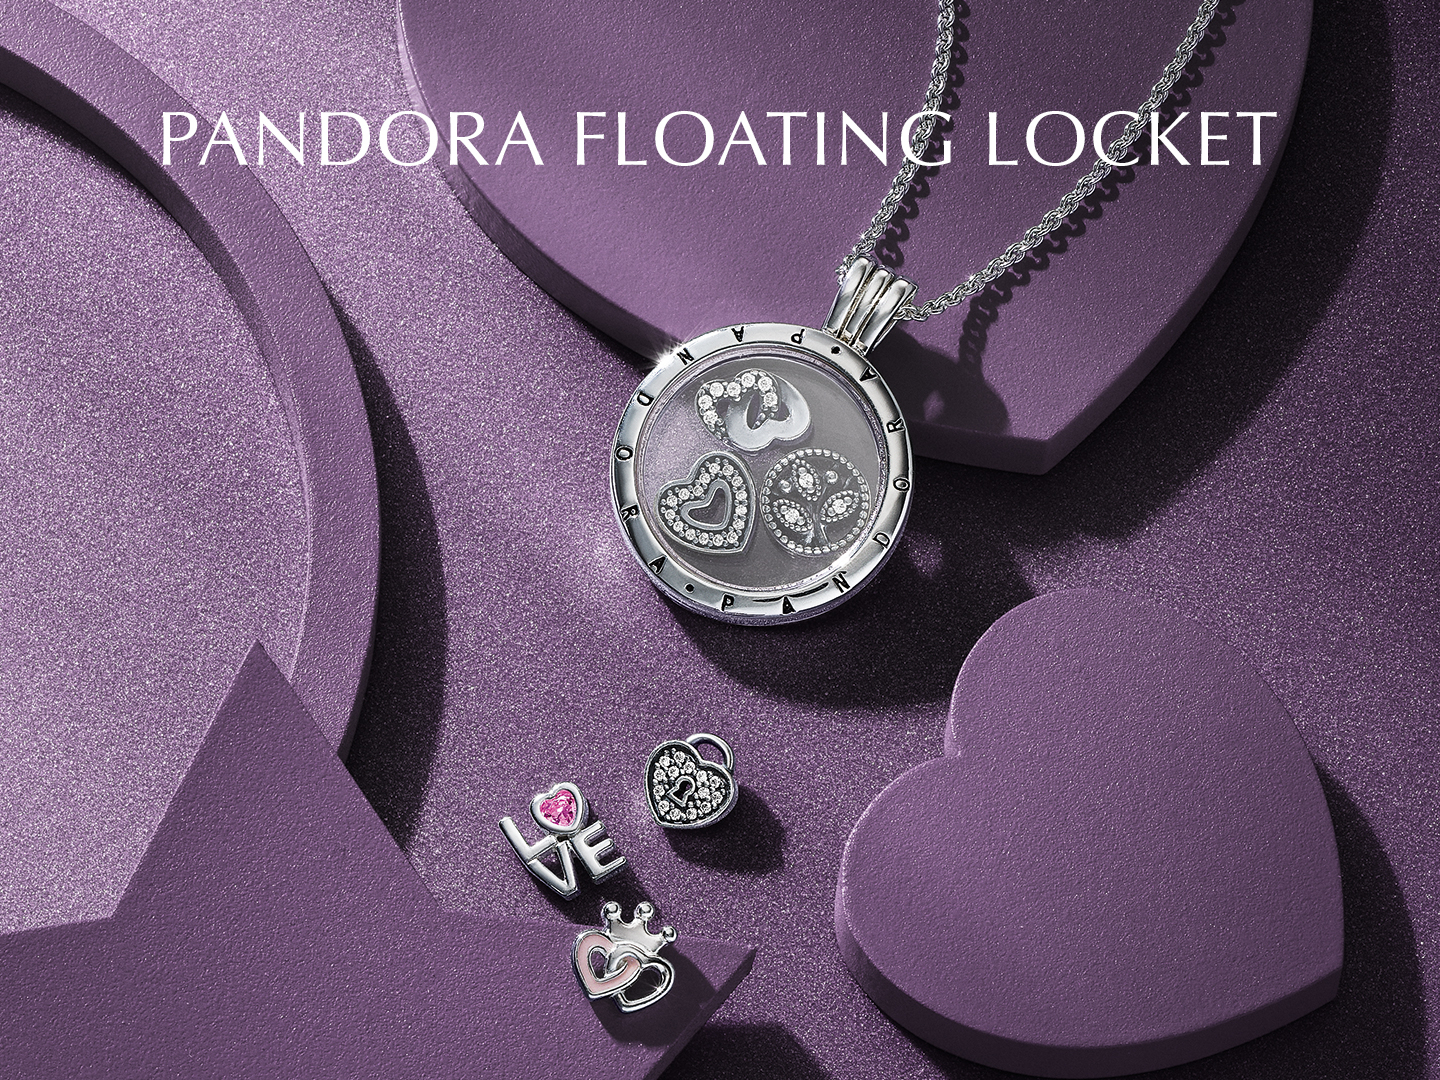 Pandora Floating Locket | Official Online Store Hong Kong | Pando With Regard To Most Up To Date Pandora Lockets Sparkling Necklaces (View 11 of 25)